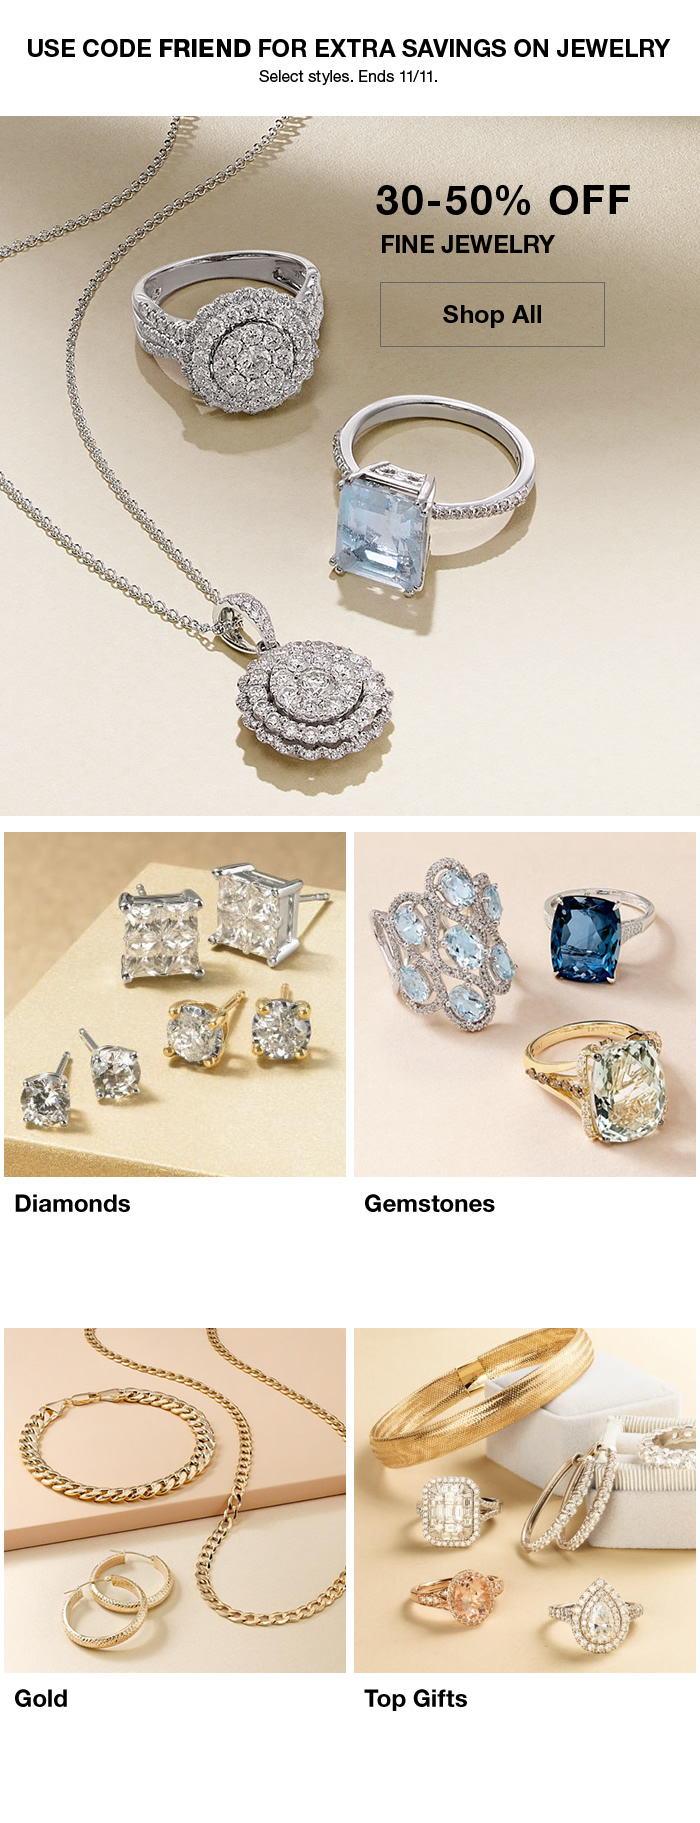 Use Code FRIEND For Extra Savings on Jewelry, 30-50 percent Off, Fine Jewelry, Shop All, Diamonds, Gemstones, Gold, Top Gifts